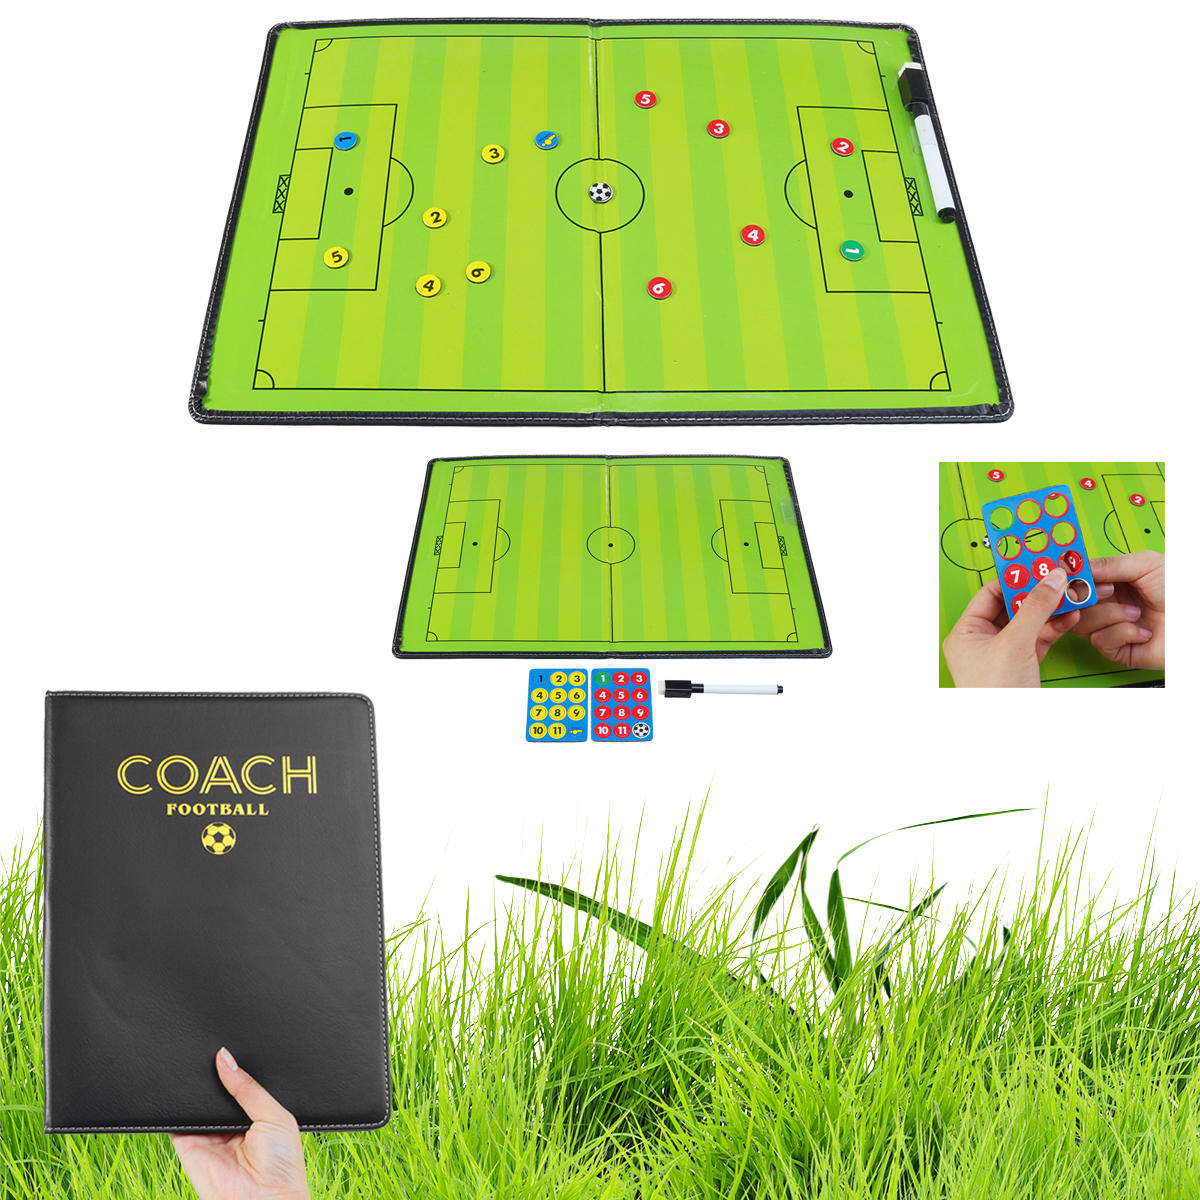 44x32cm Foldable Magnetic Coaching Training Board Tactical Soccer Football Teaching Kit